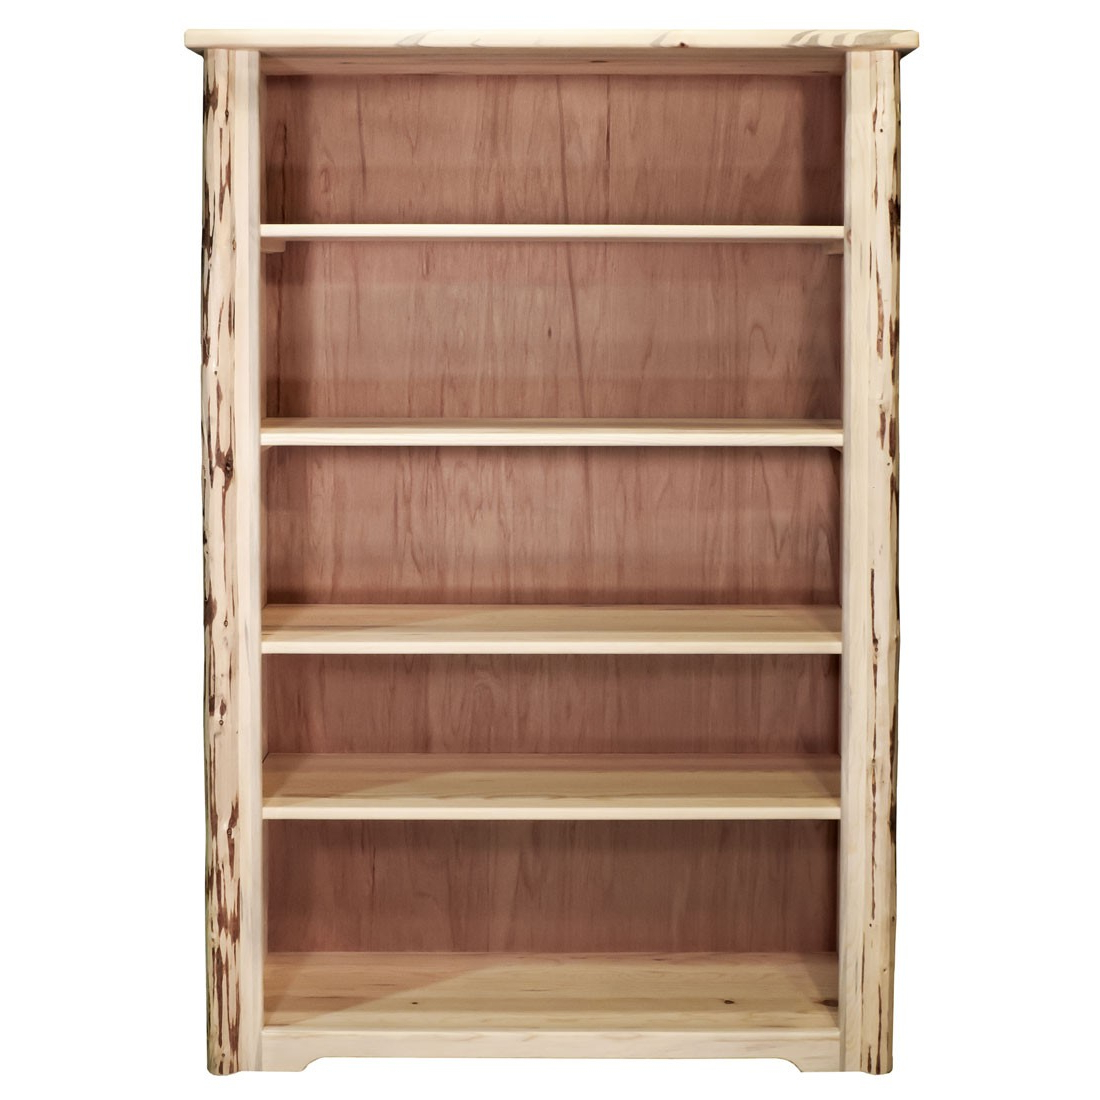 Recent Montana Skip Peel Standard Bookshelf W/adjustable Shelves Within Standard Bookcases (View 8 of 20)